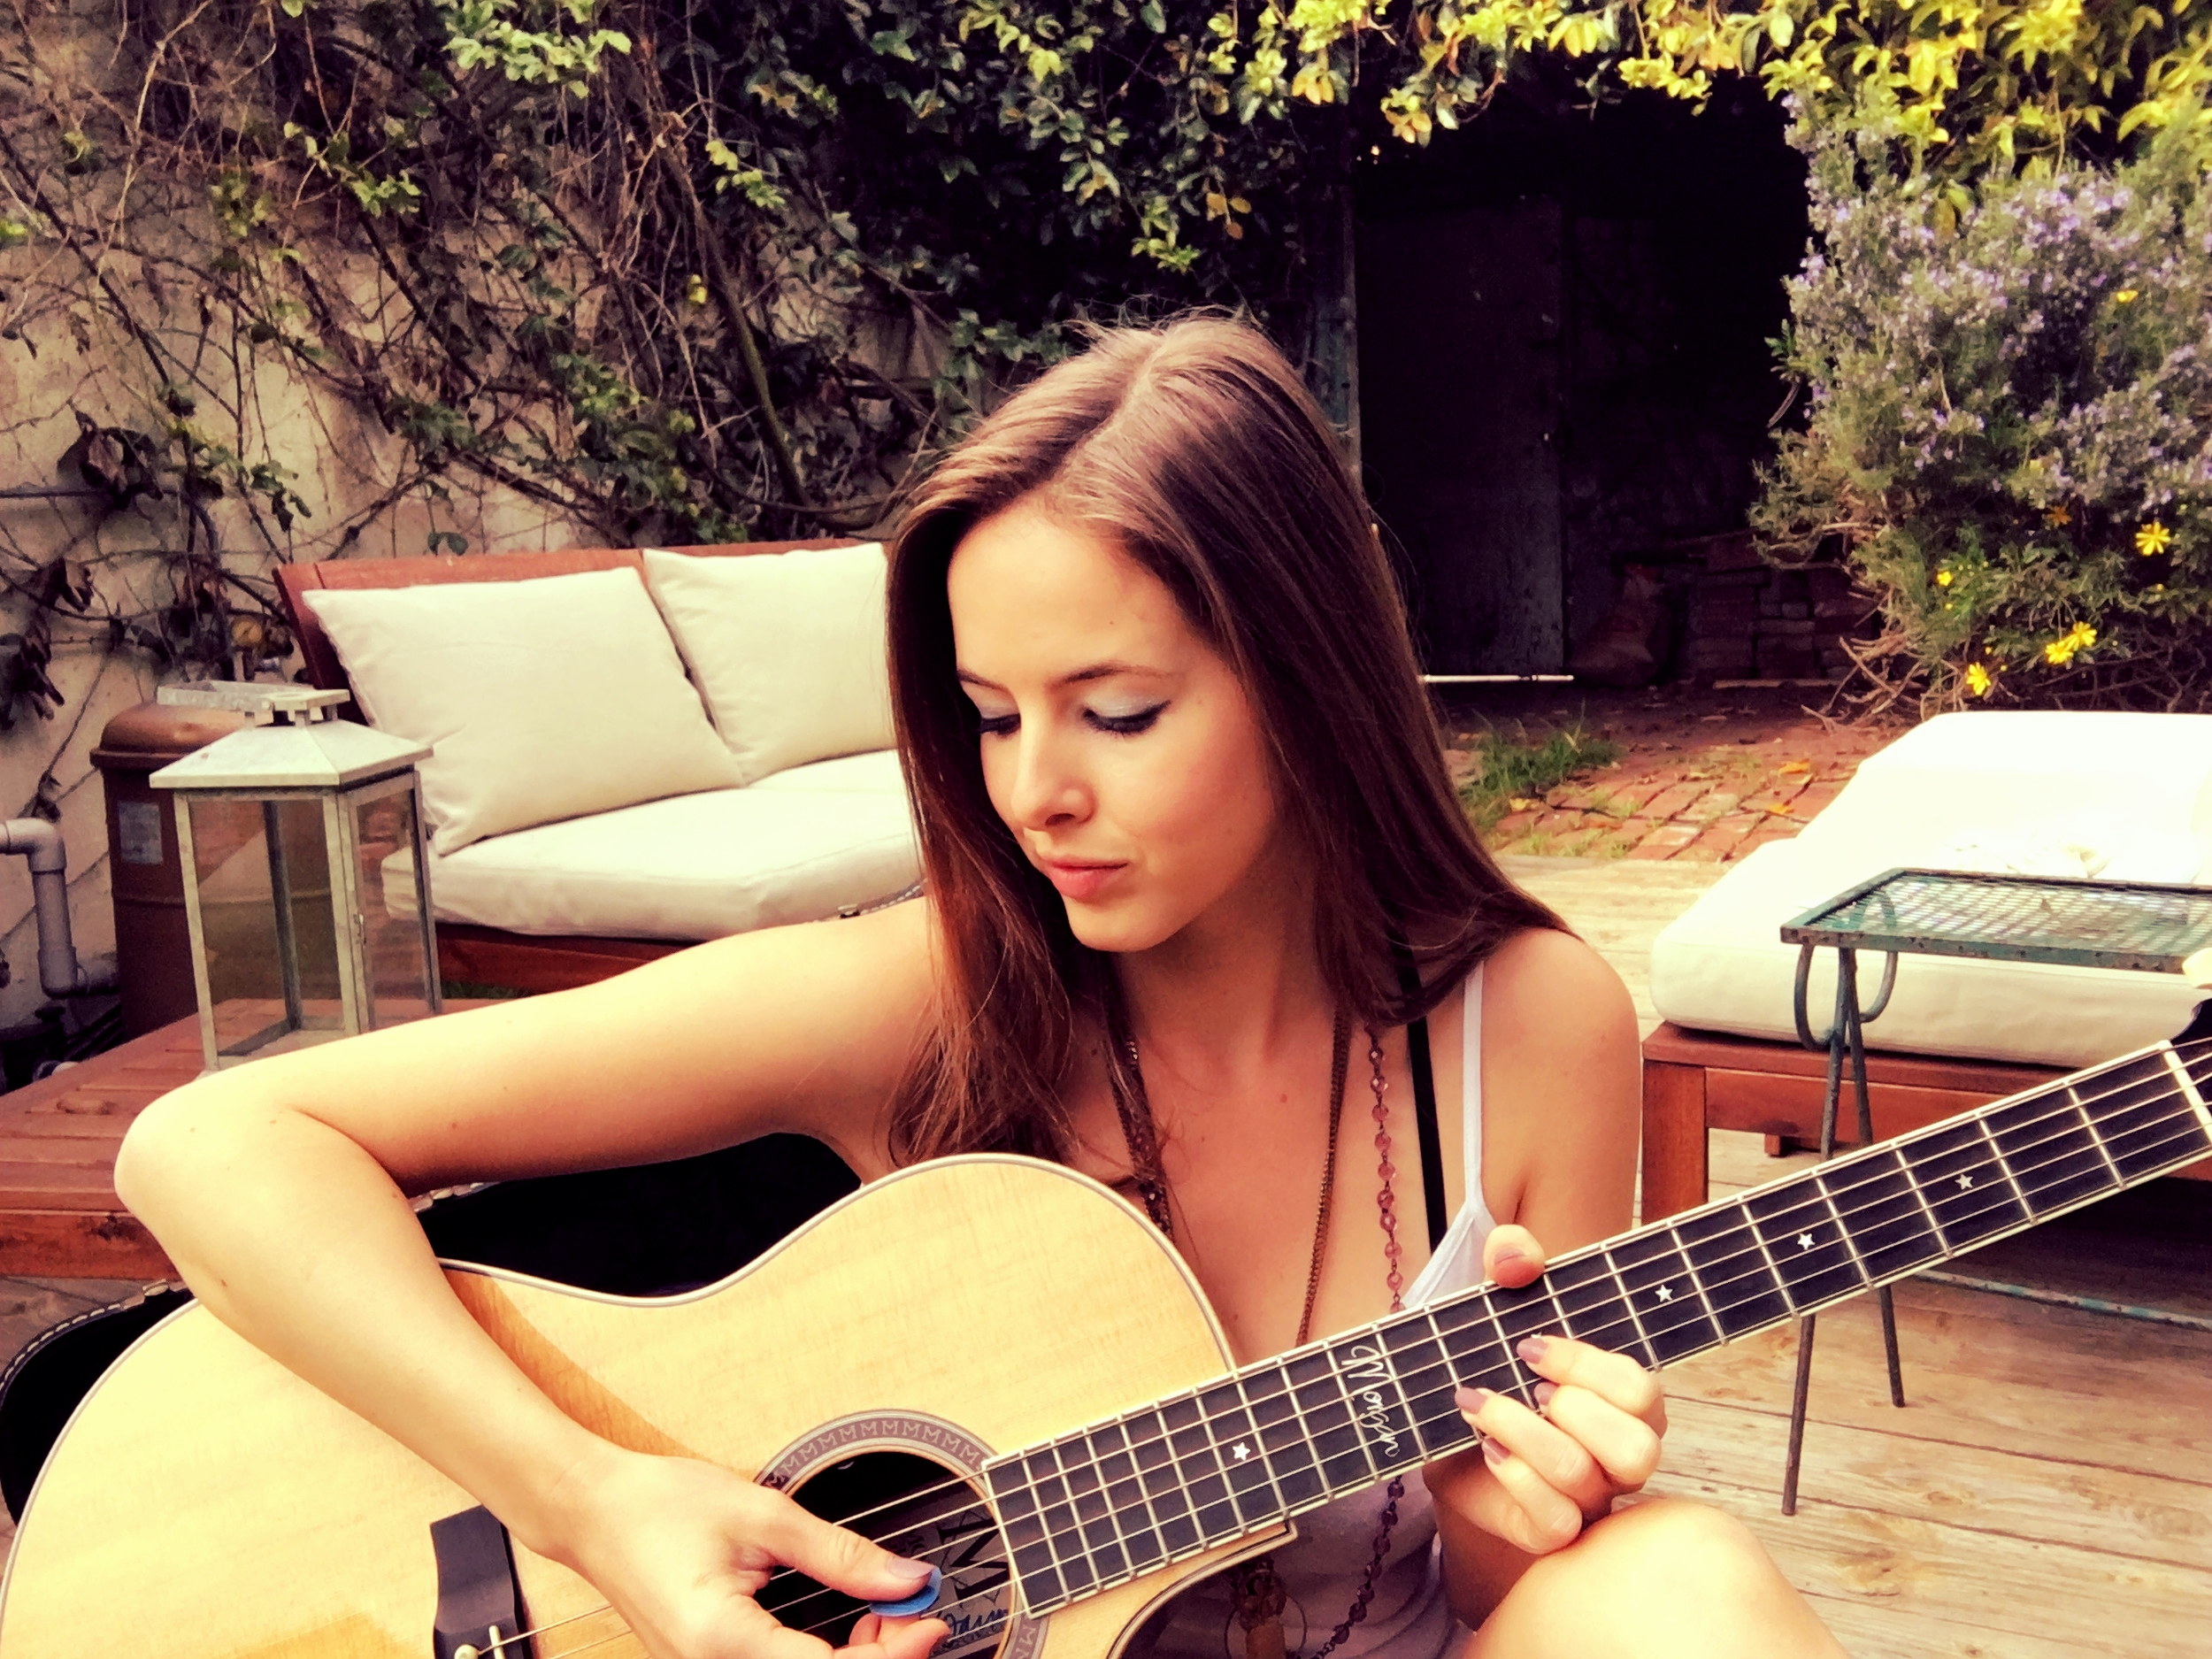 Morgan Ovens plays in the backyard of her home.